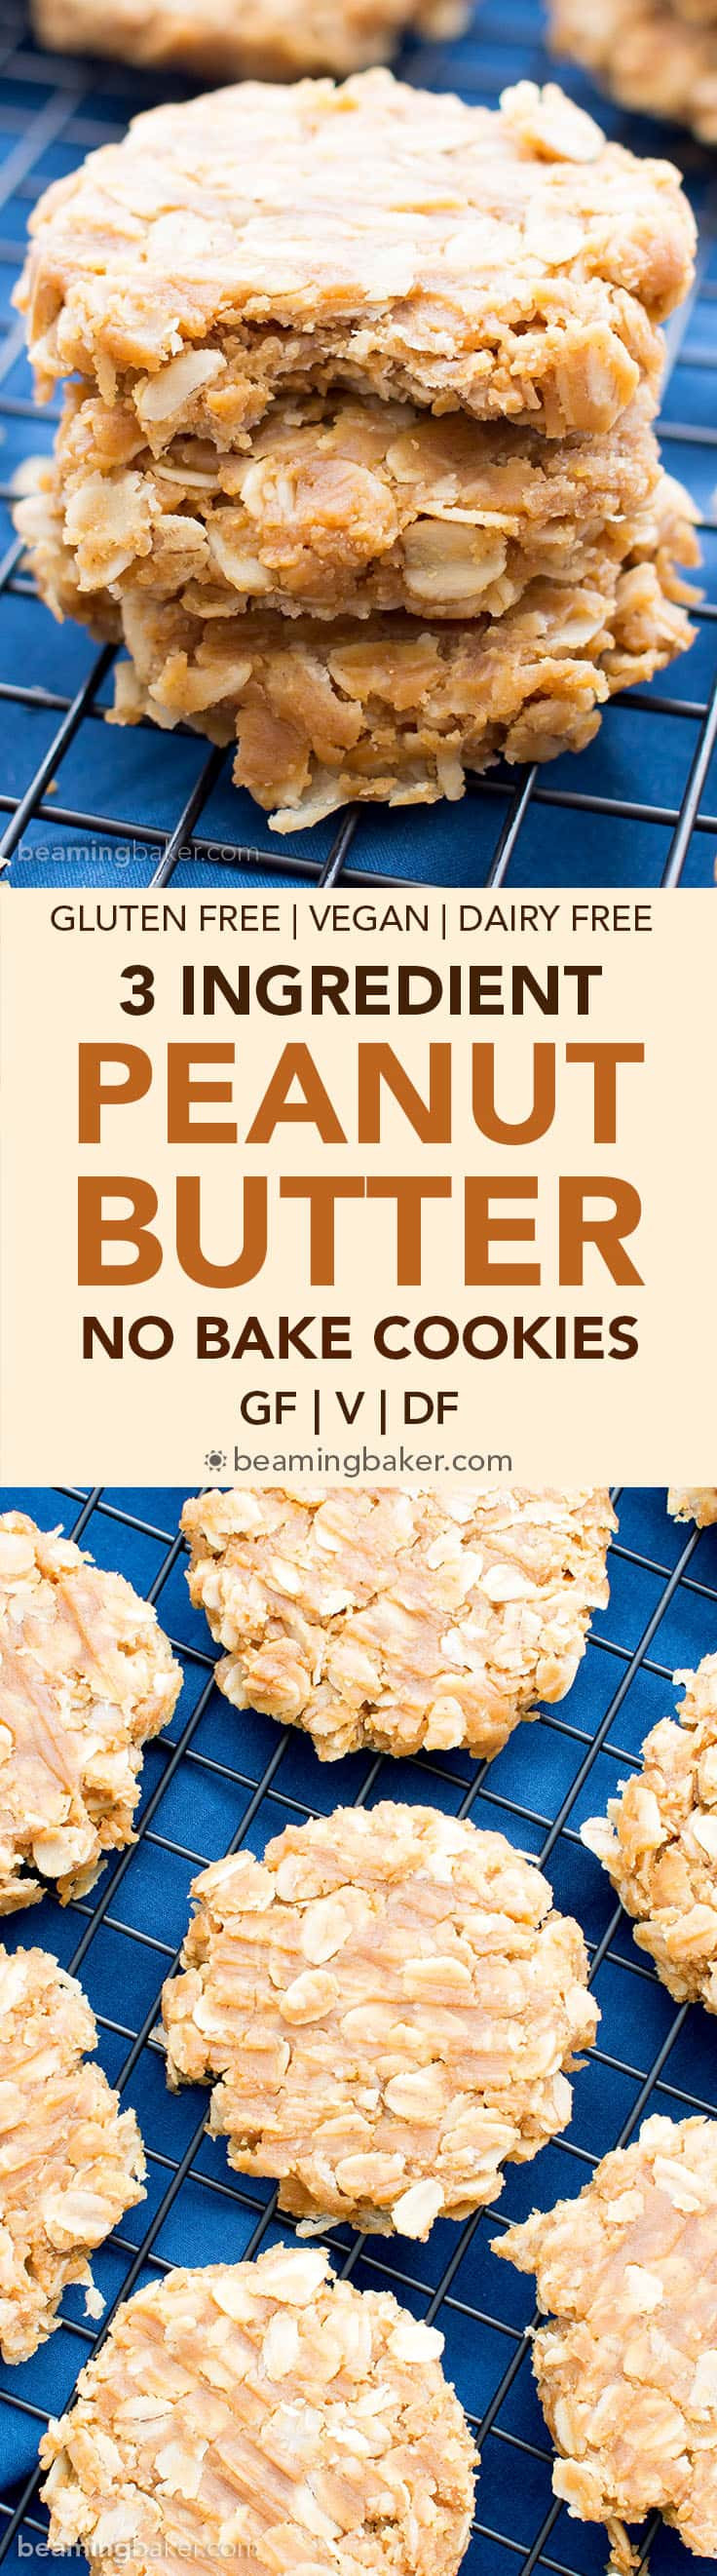 Healthy No Bake Peanut Butter Oatmeal Cookies  healthy no bake peanut butter oatmeal cookies